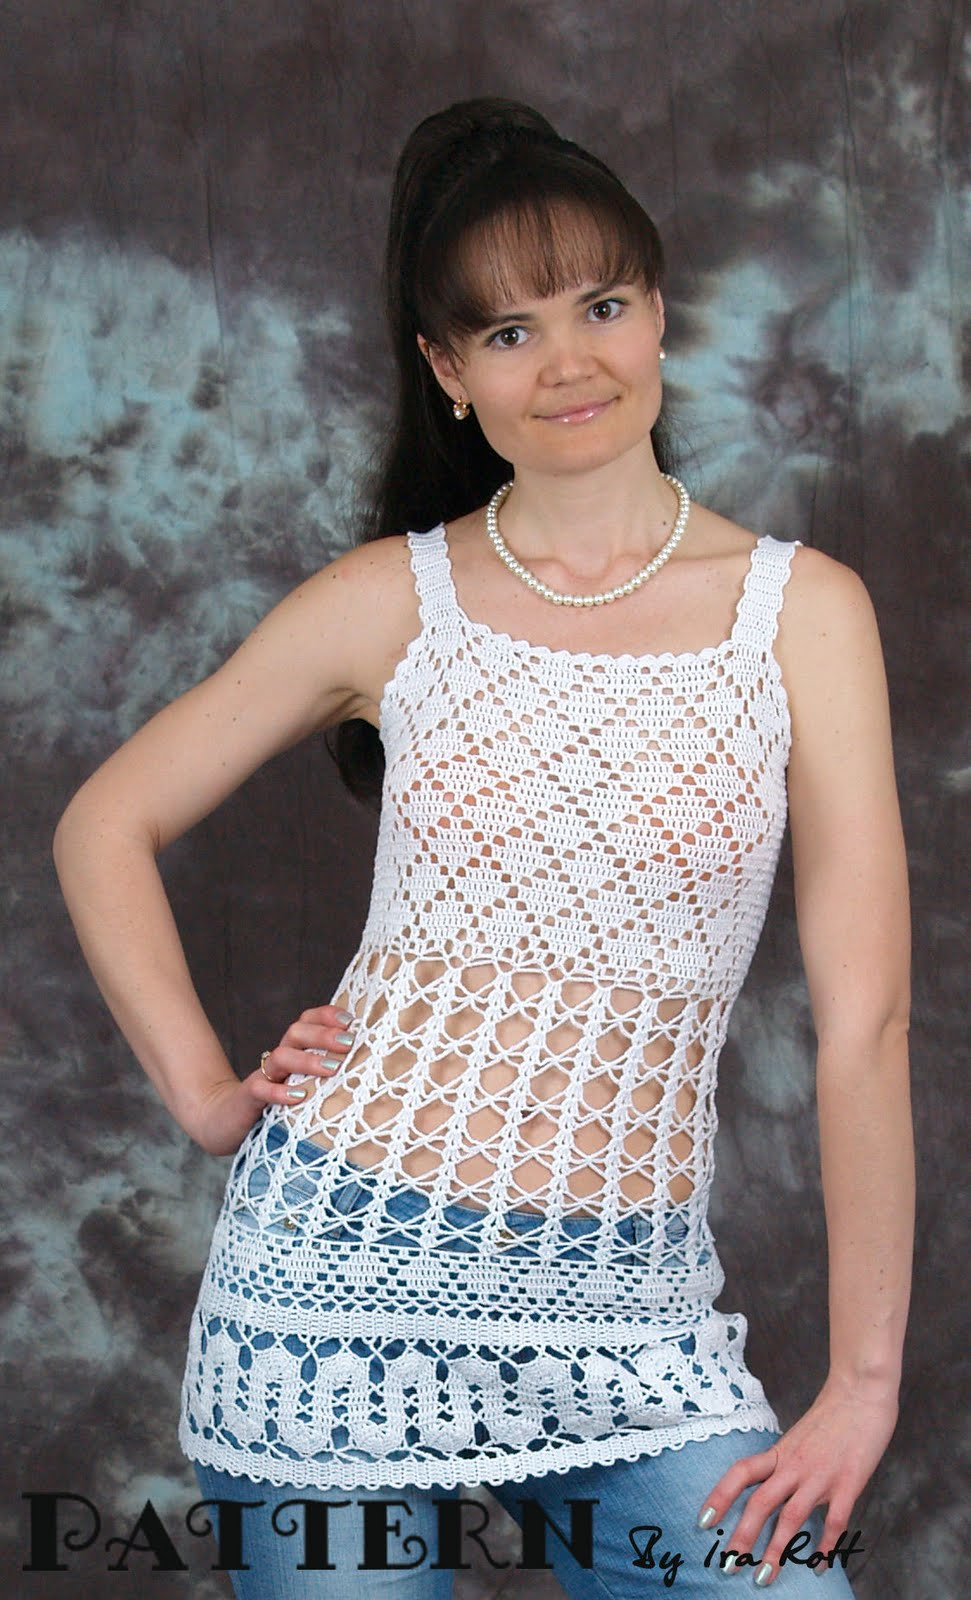 Crochet Top Pattern : Crochet Design By Ira Rott: Bruges Lace Crochet Top - PDF Pattern ...